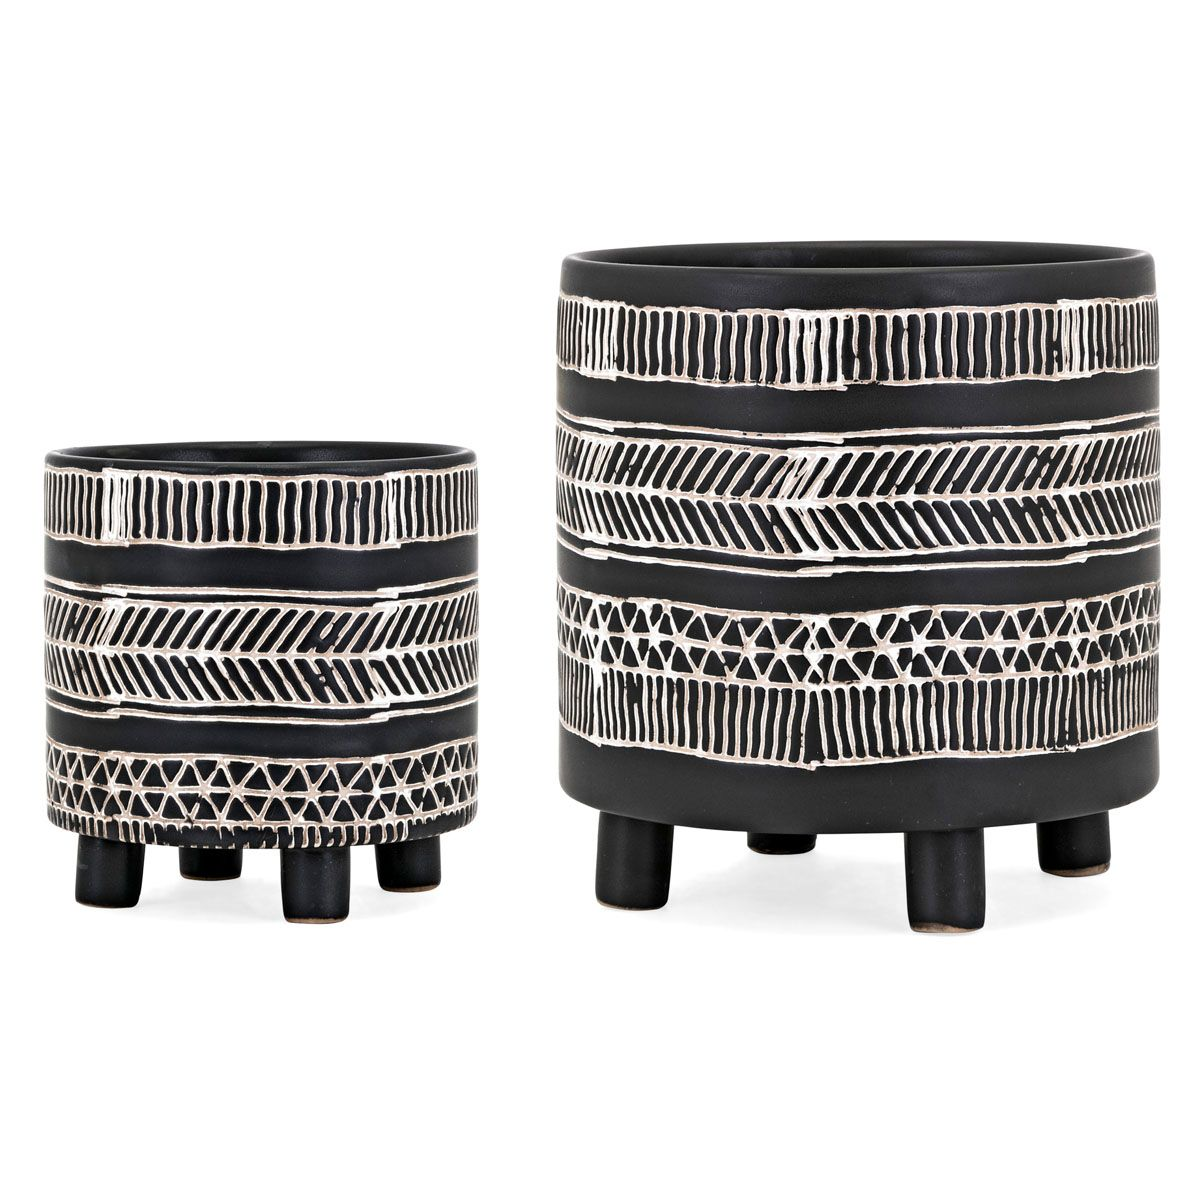 Desert Lines Planters - Set of 2